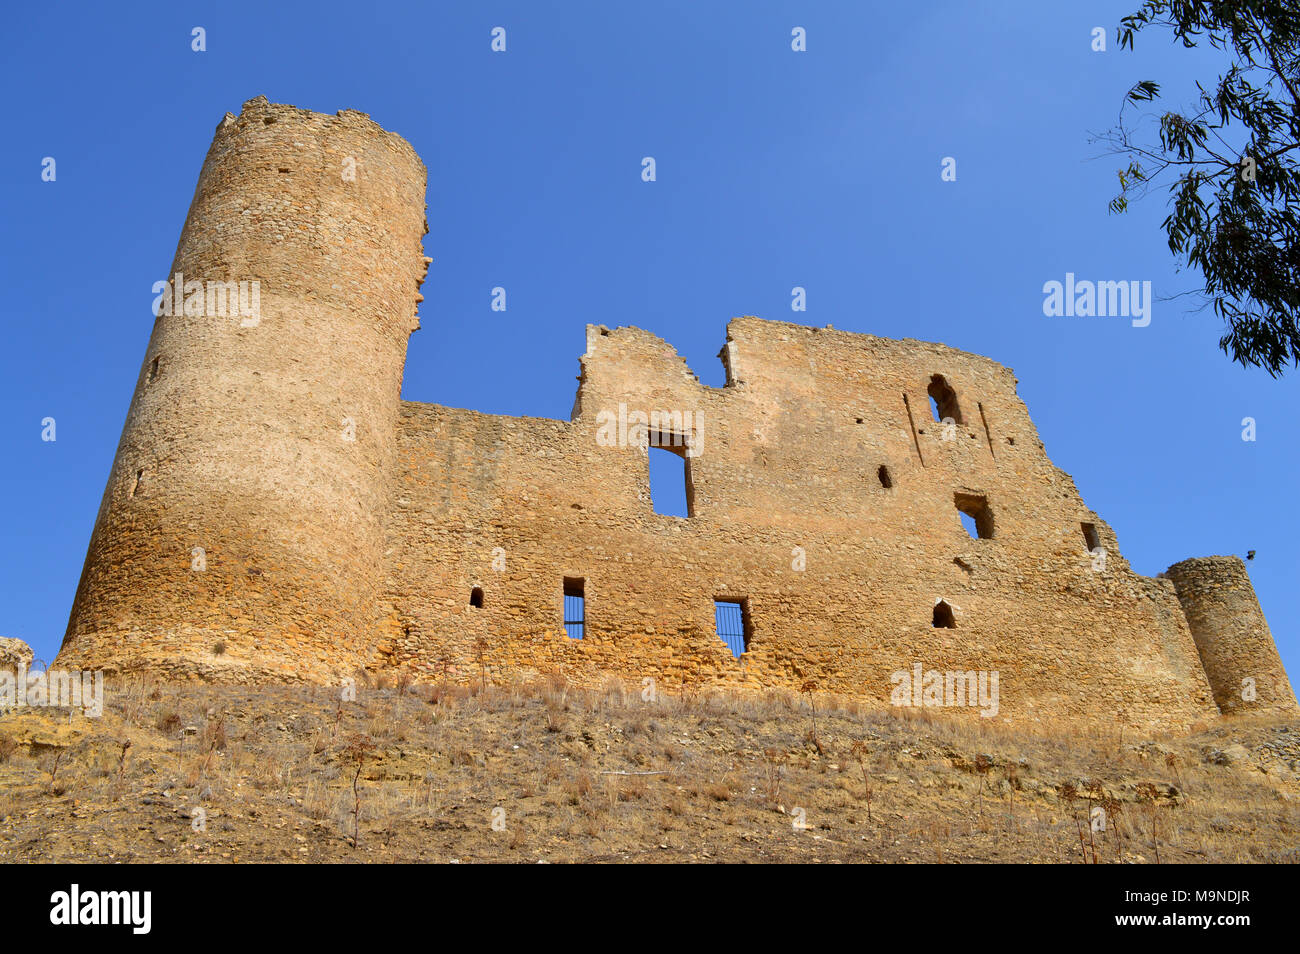 View of Medieval Castle, Mazzarino, Sicilian Heritage, Italy, Europe Stock Photo